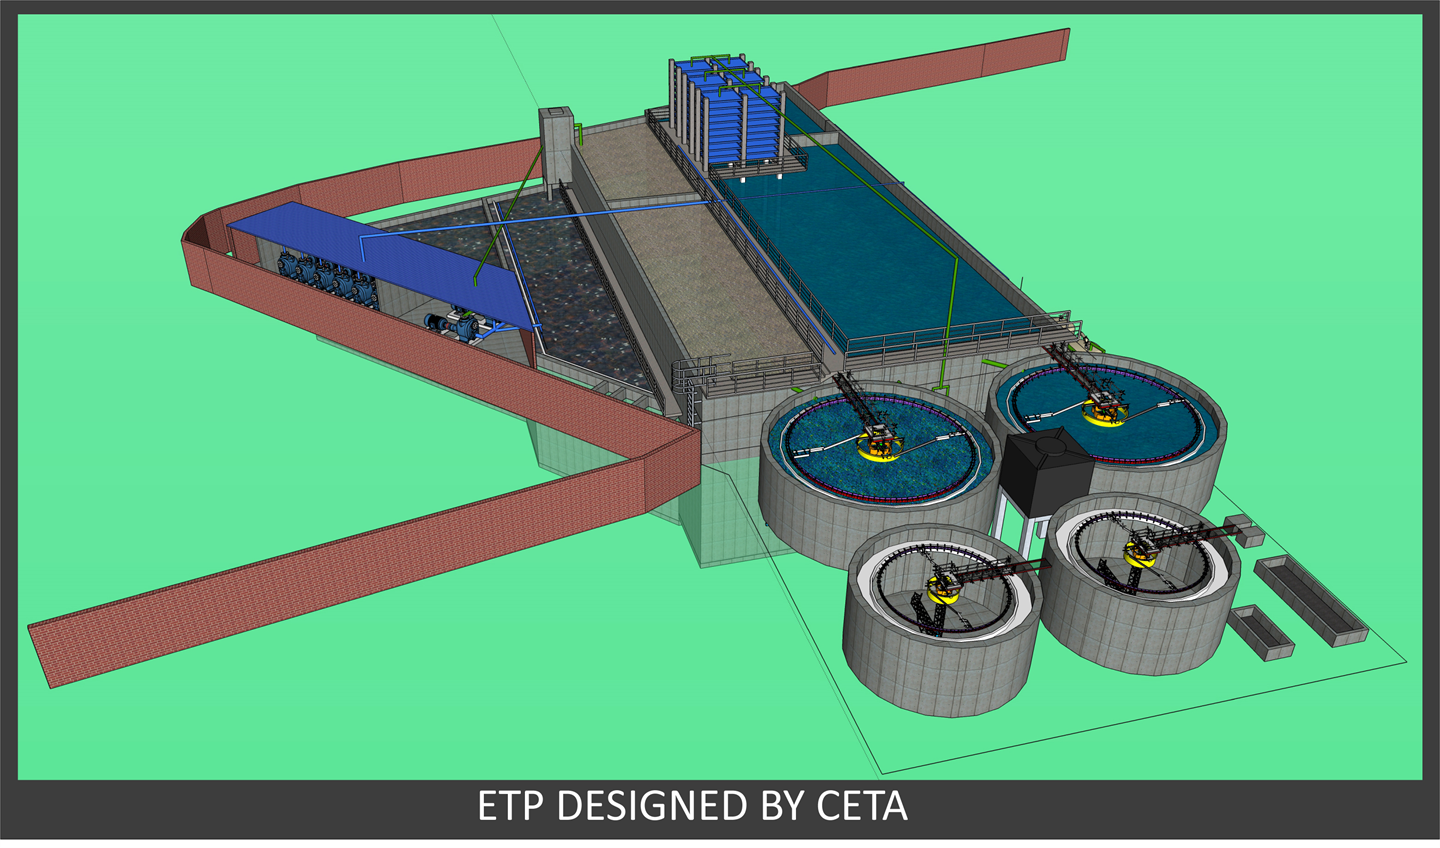 Centre for Engineering & Technical Assistance (CETA)